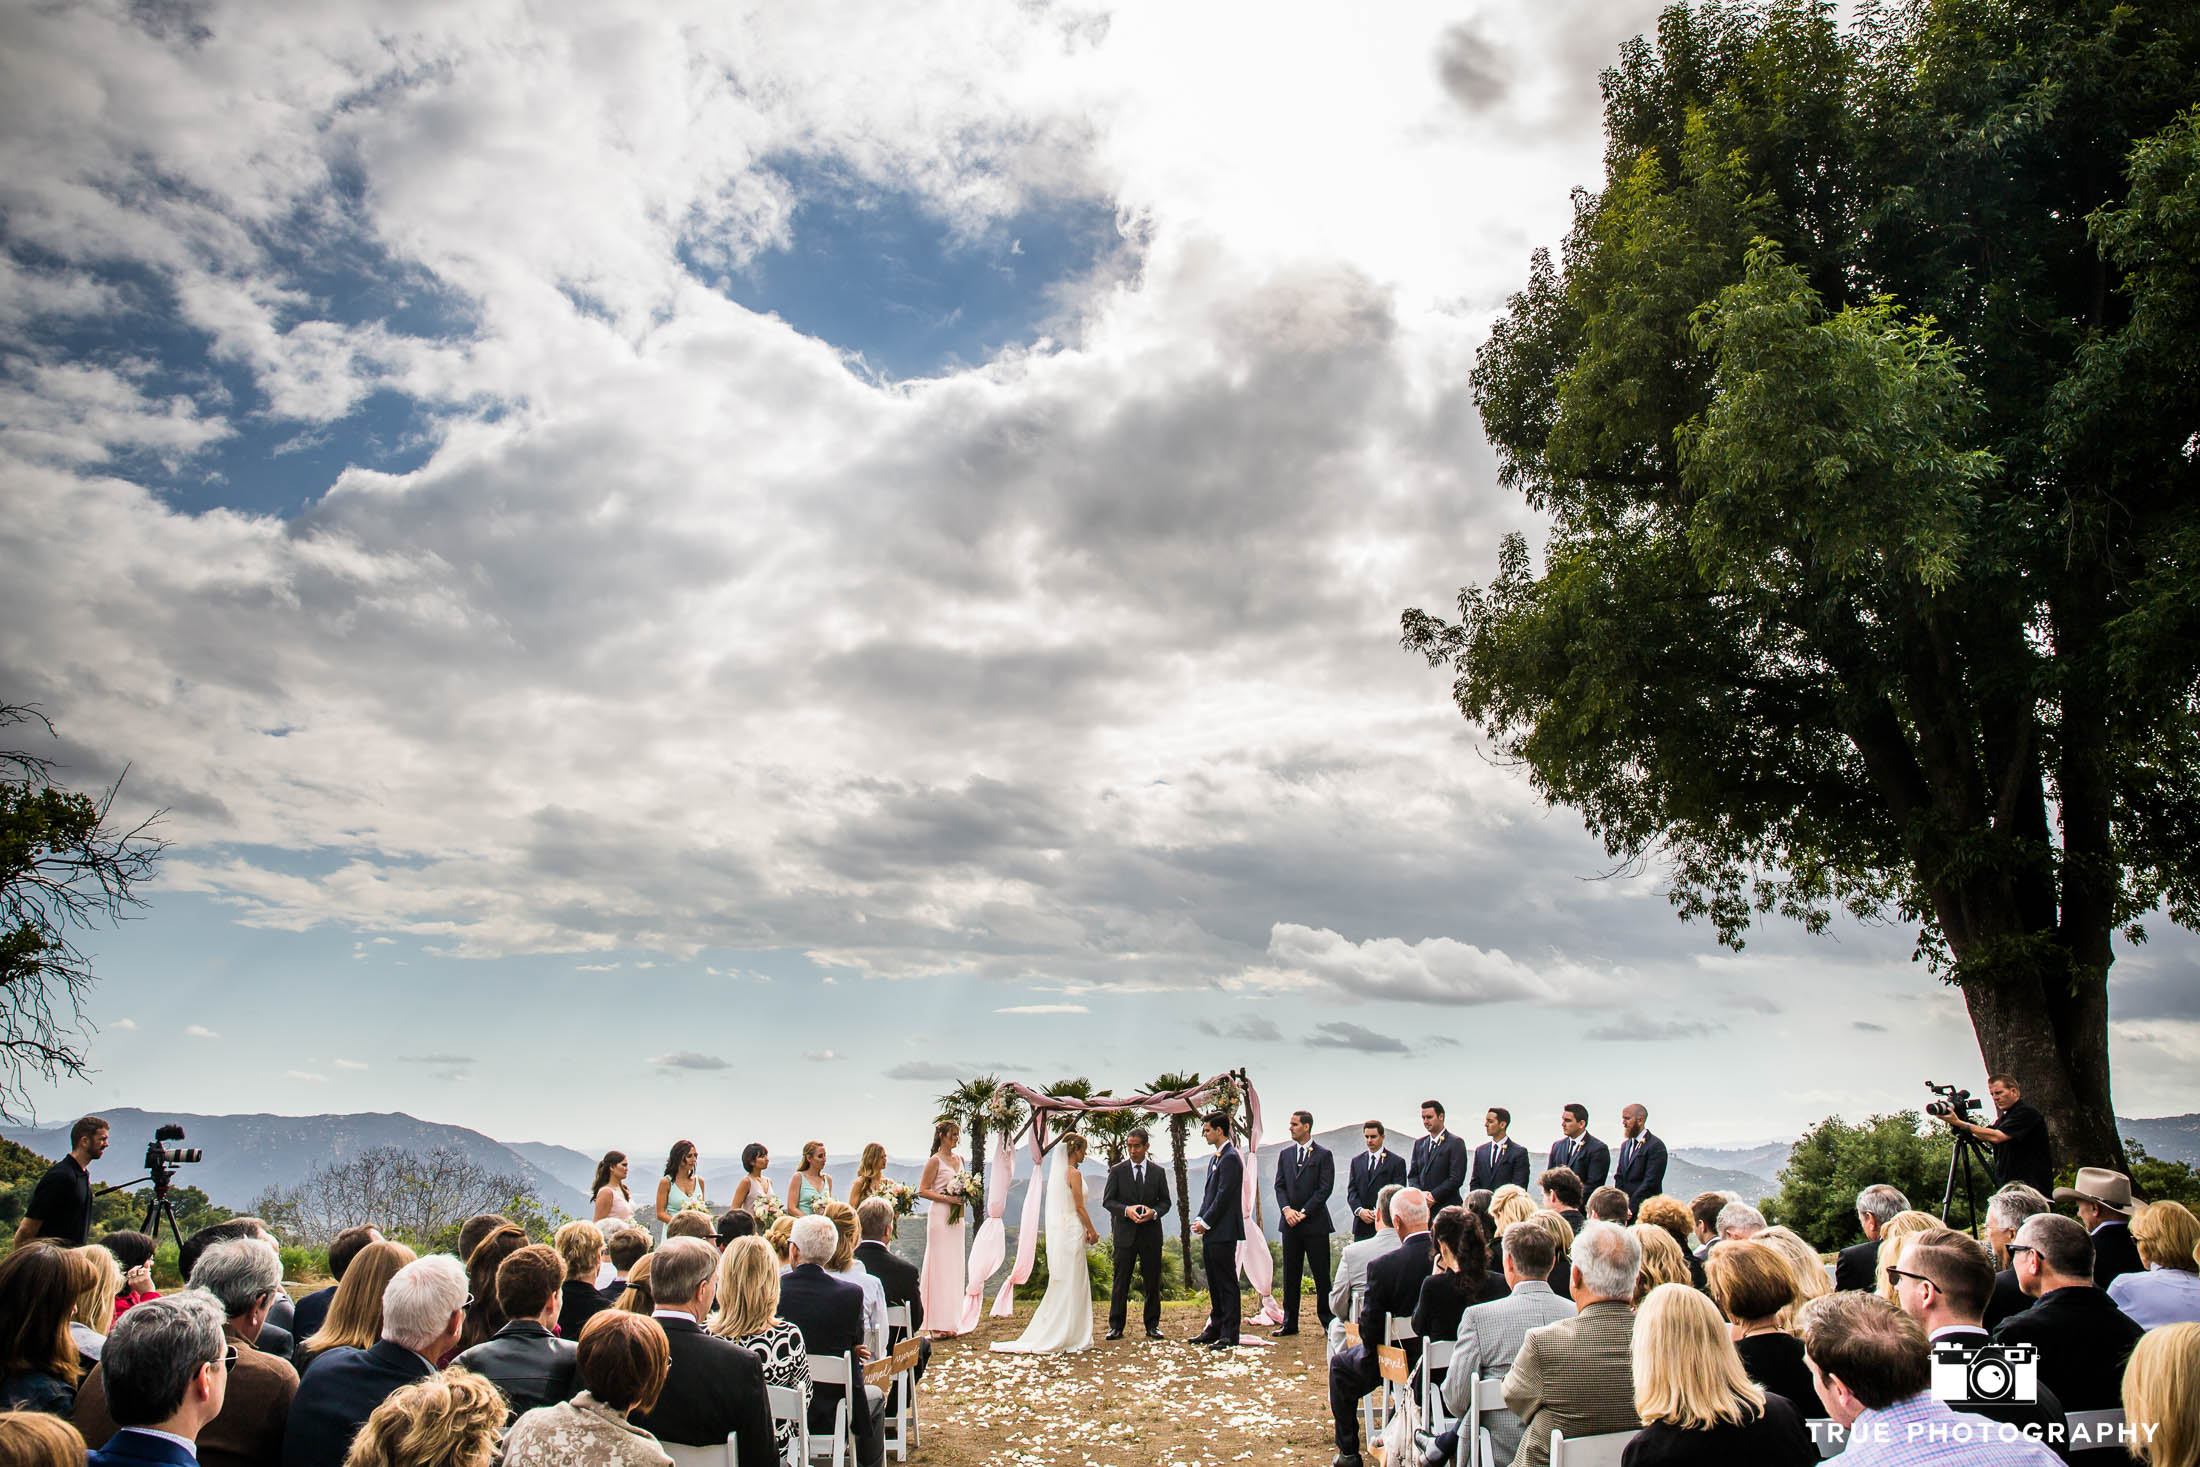 Wide-angle perspective of bride and groom tying the knot during rustic outdoor wedding ceremony